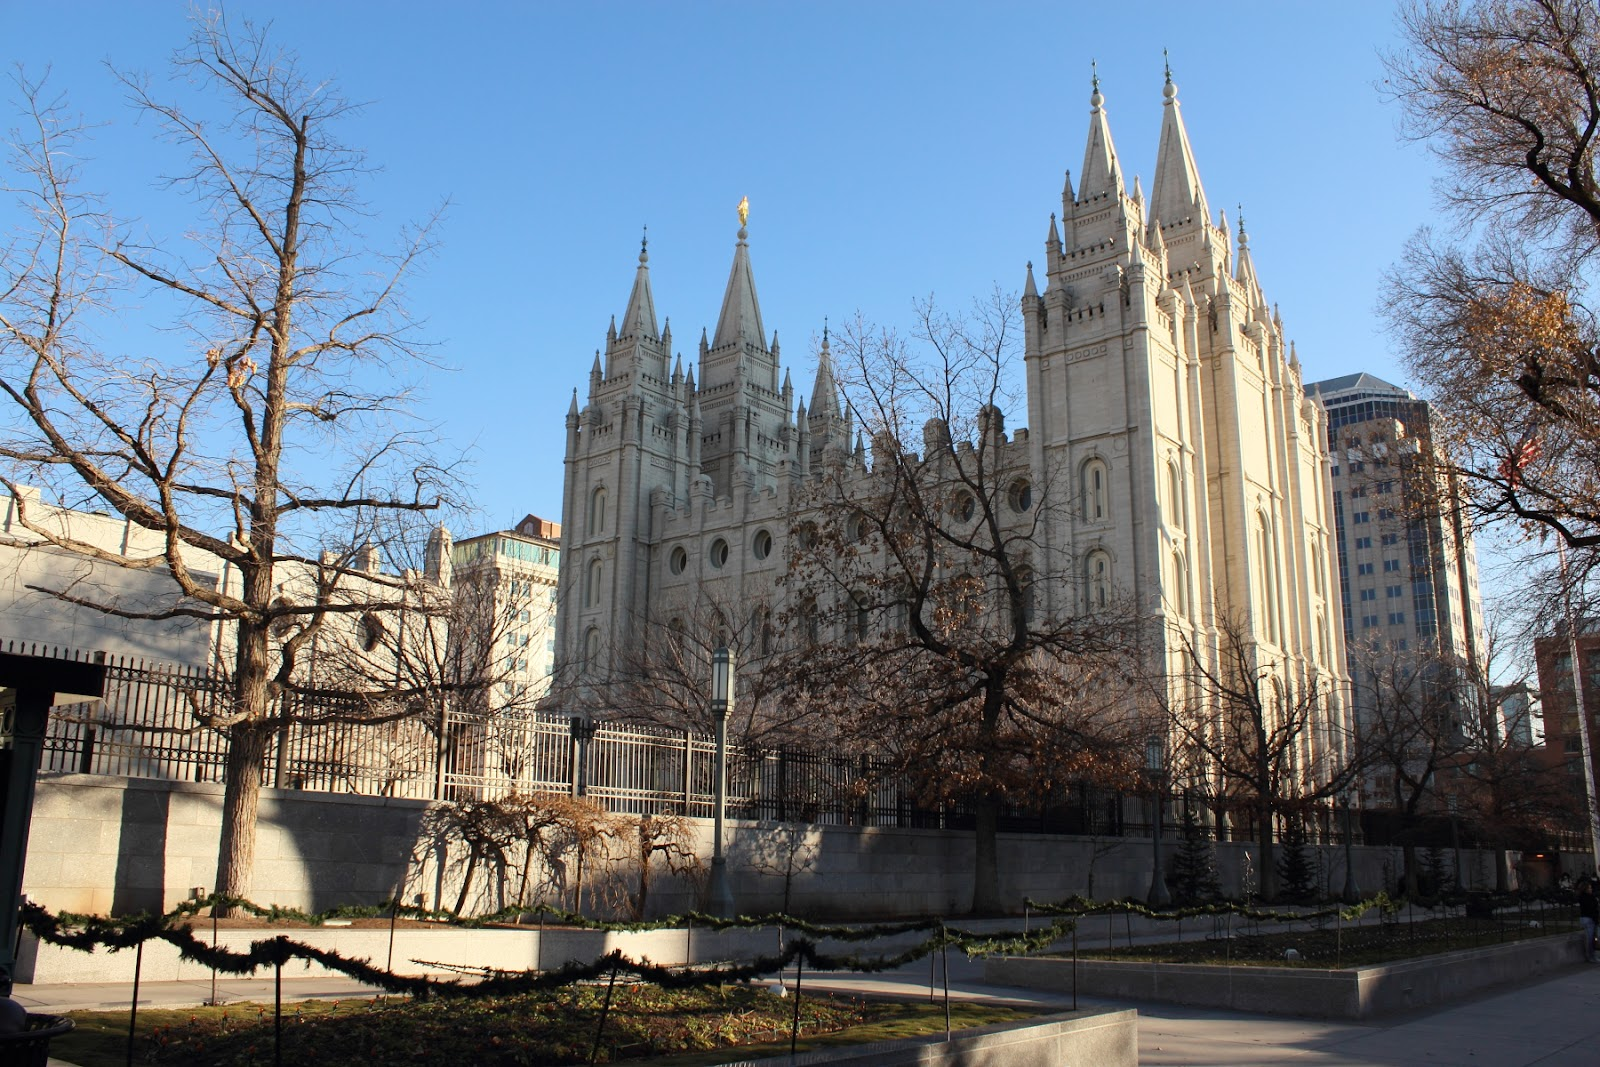 The Church of Jesus Christ of Latter-day Saints (Temple Square)